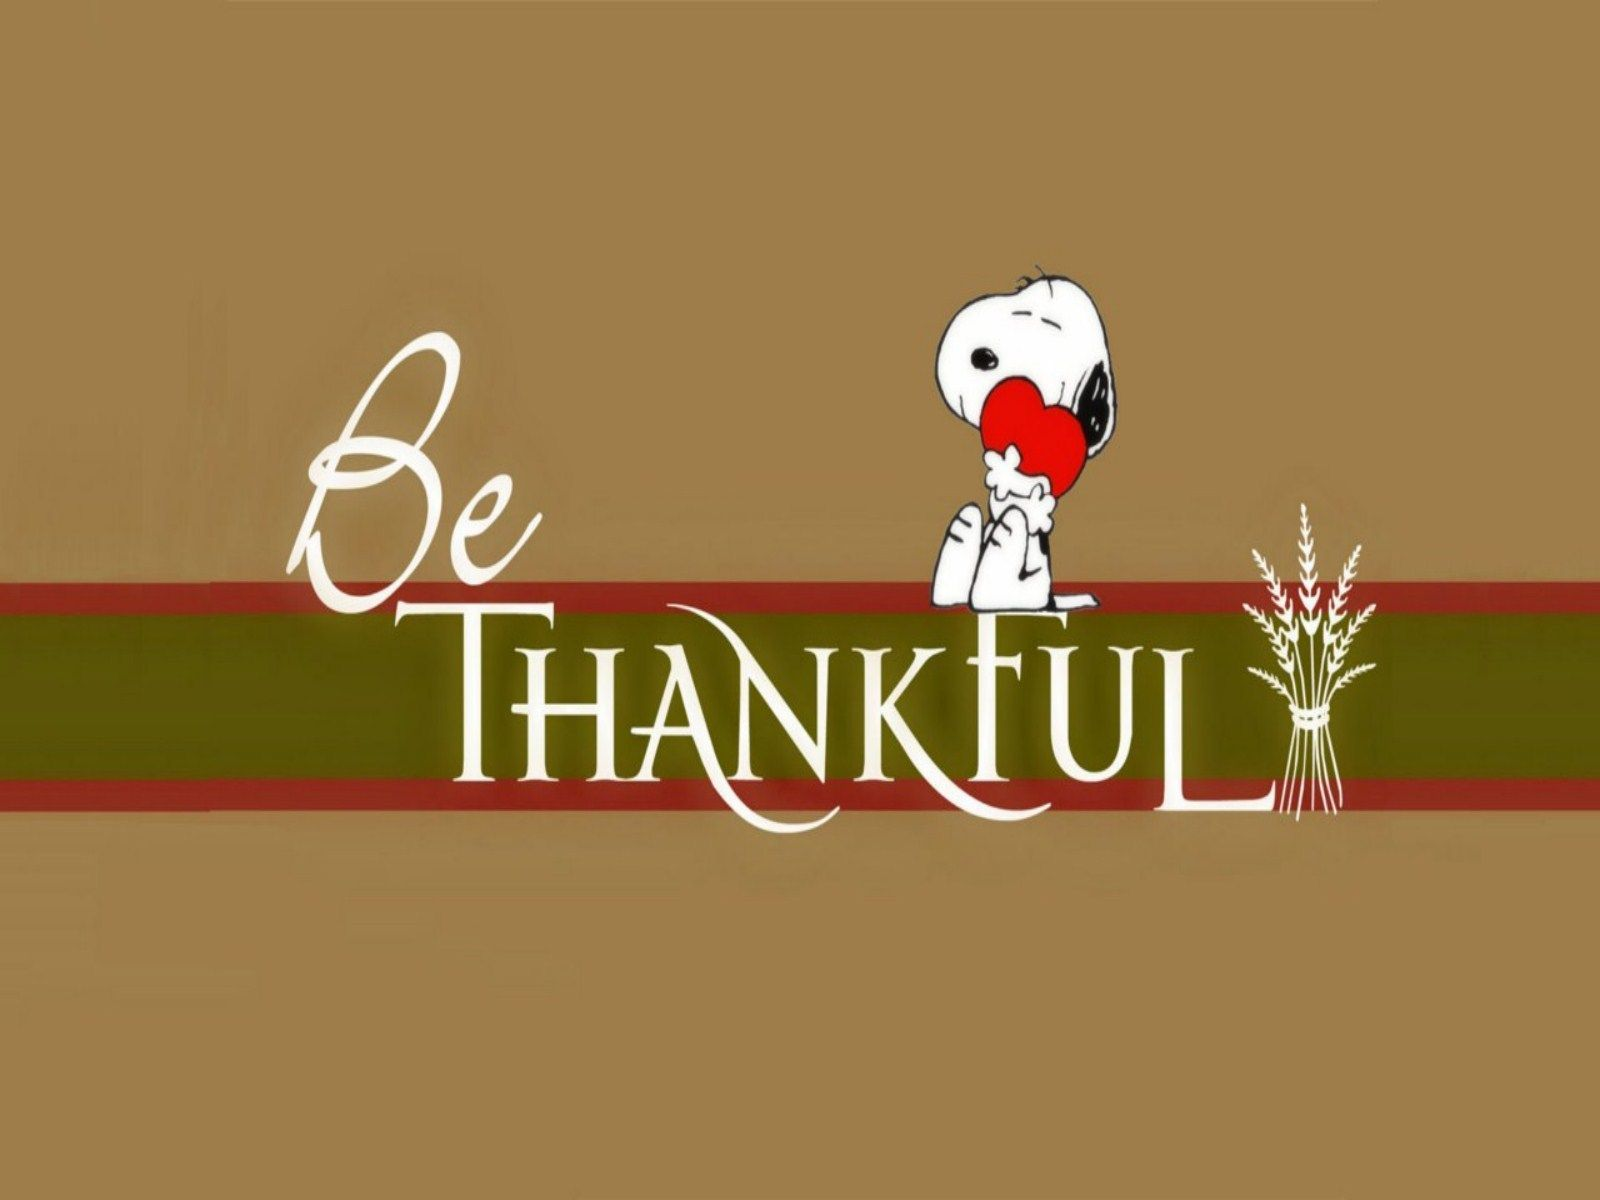 Happy Thanksgiving Android Wallpapers, Happy Thanksgiving - Illustration - HD Wallpaper